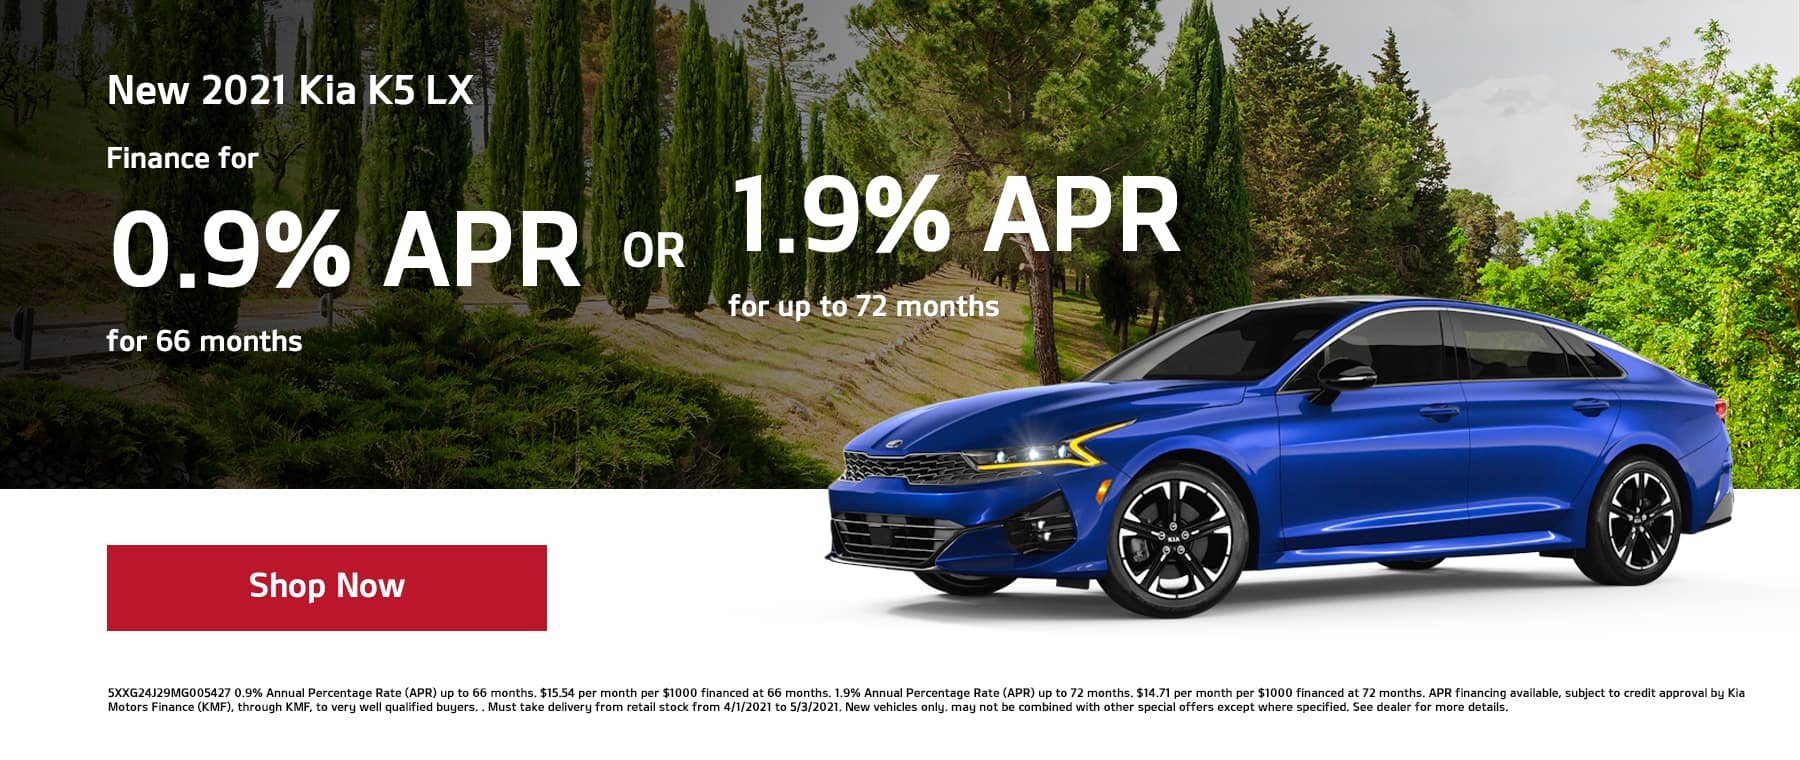 Finance a New 2021 Kia K5 LX for 0.9% for 66mos or 1.9% for 72mos!